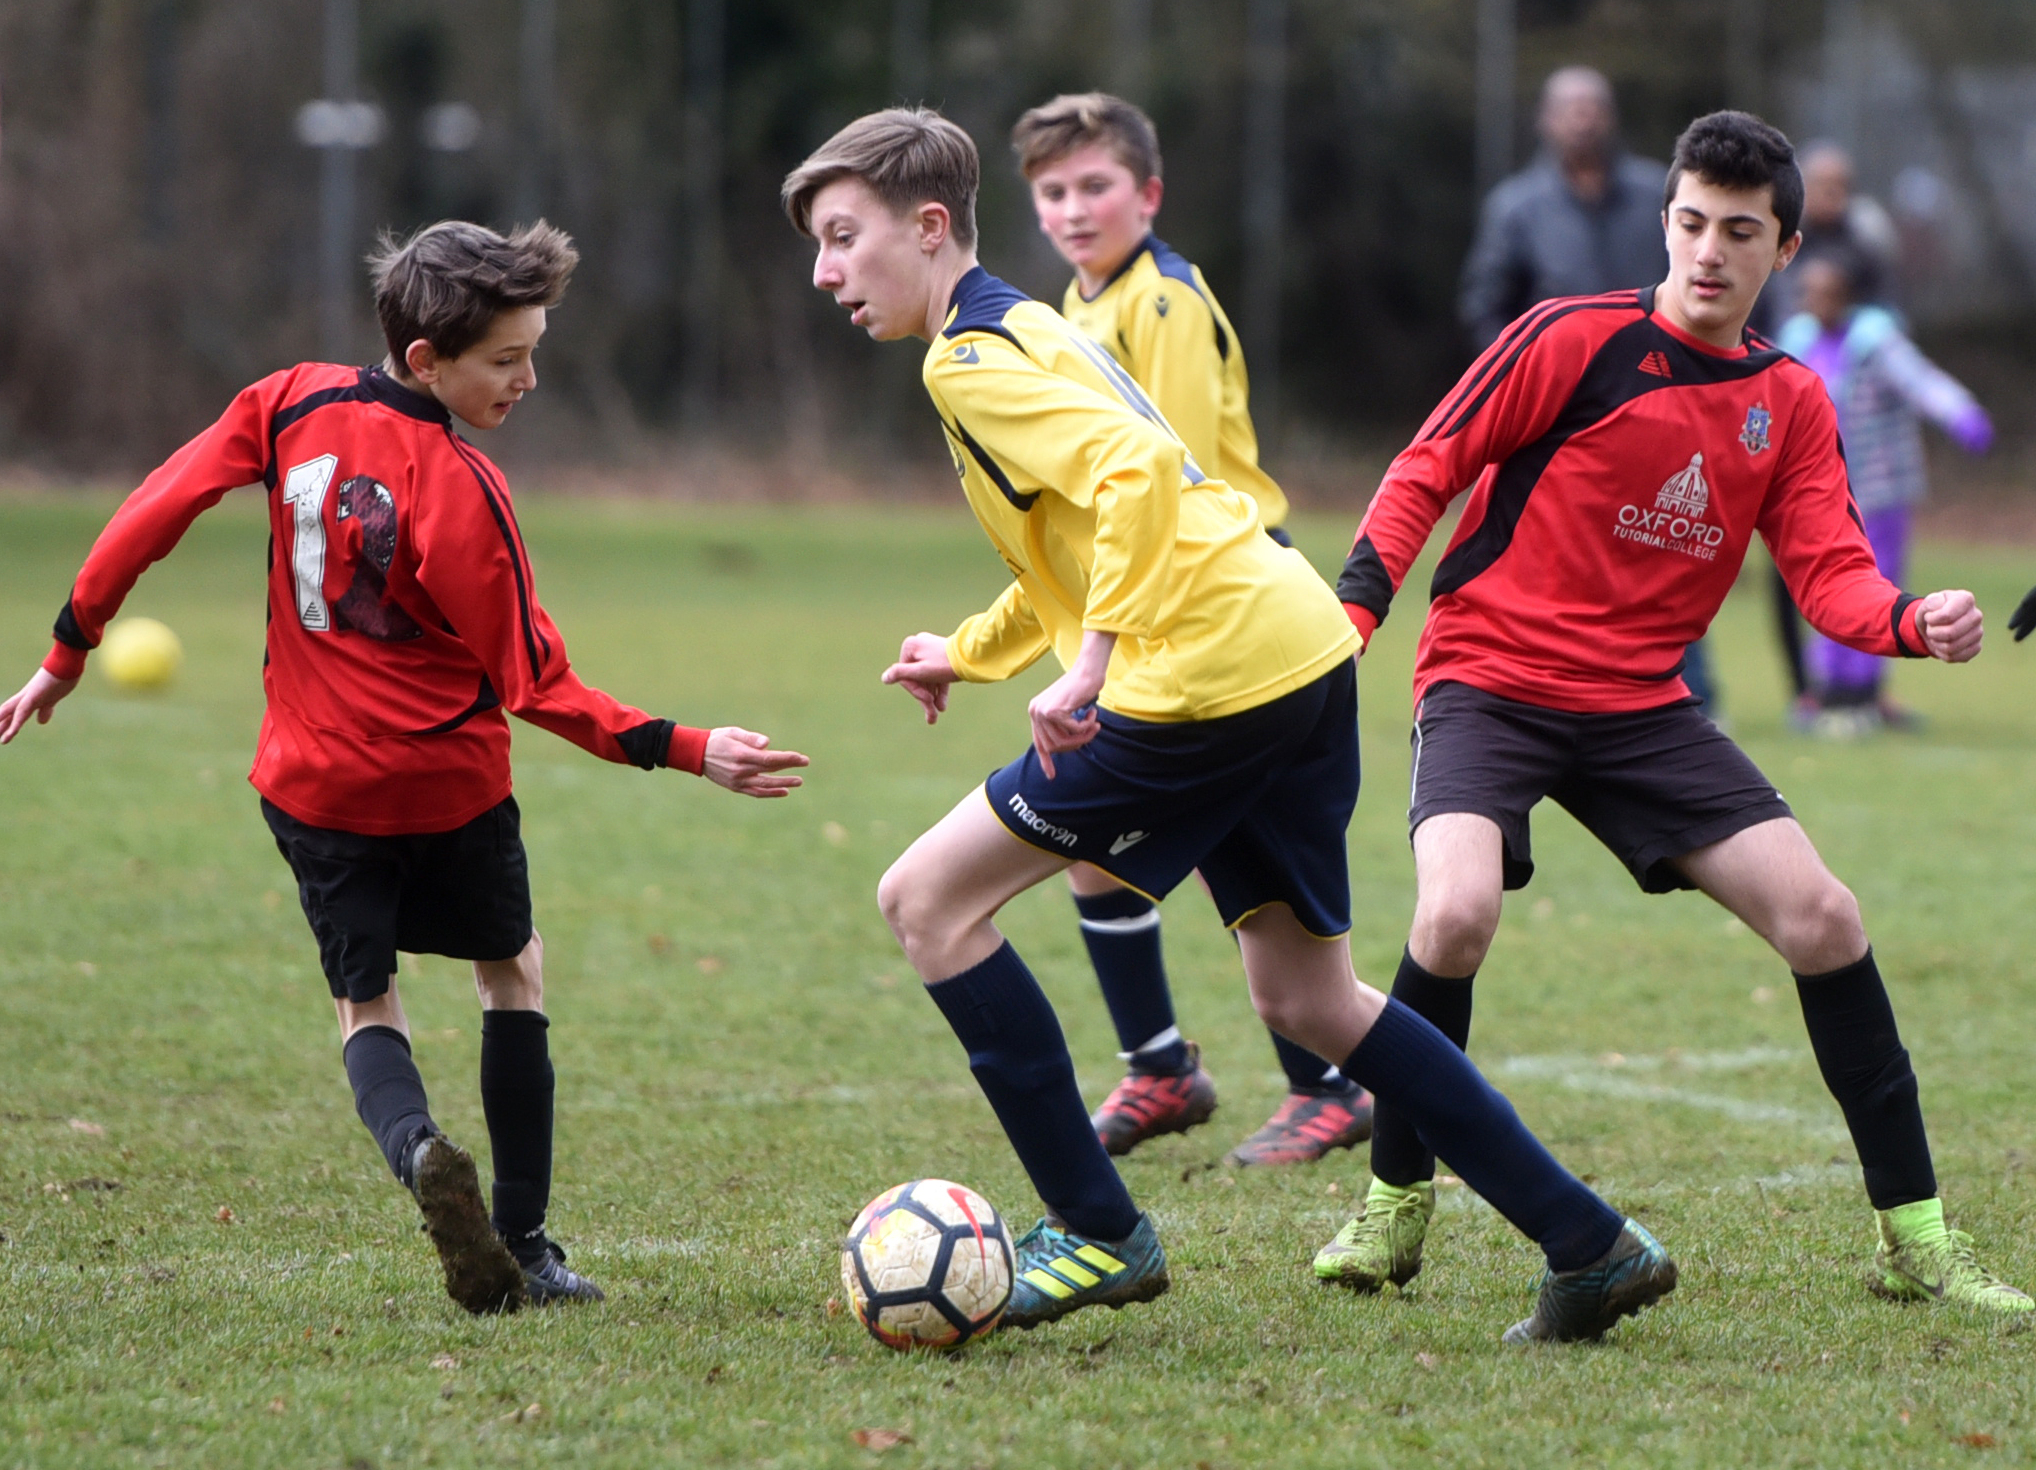 IN A SPIN: Hinksey Park's Poldi Czermark (left) is sent the wrong way by the run of Liam Jones during his side's 1-0 defeat by Bodicote Sports in the Under 13 Winter/Spring B League Pictures: Richard Cave